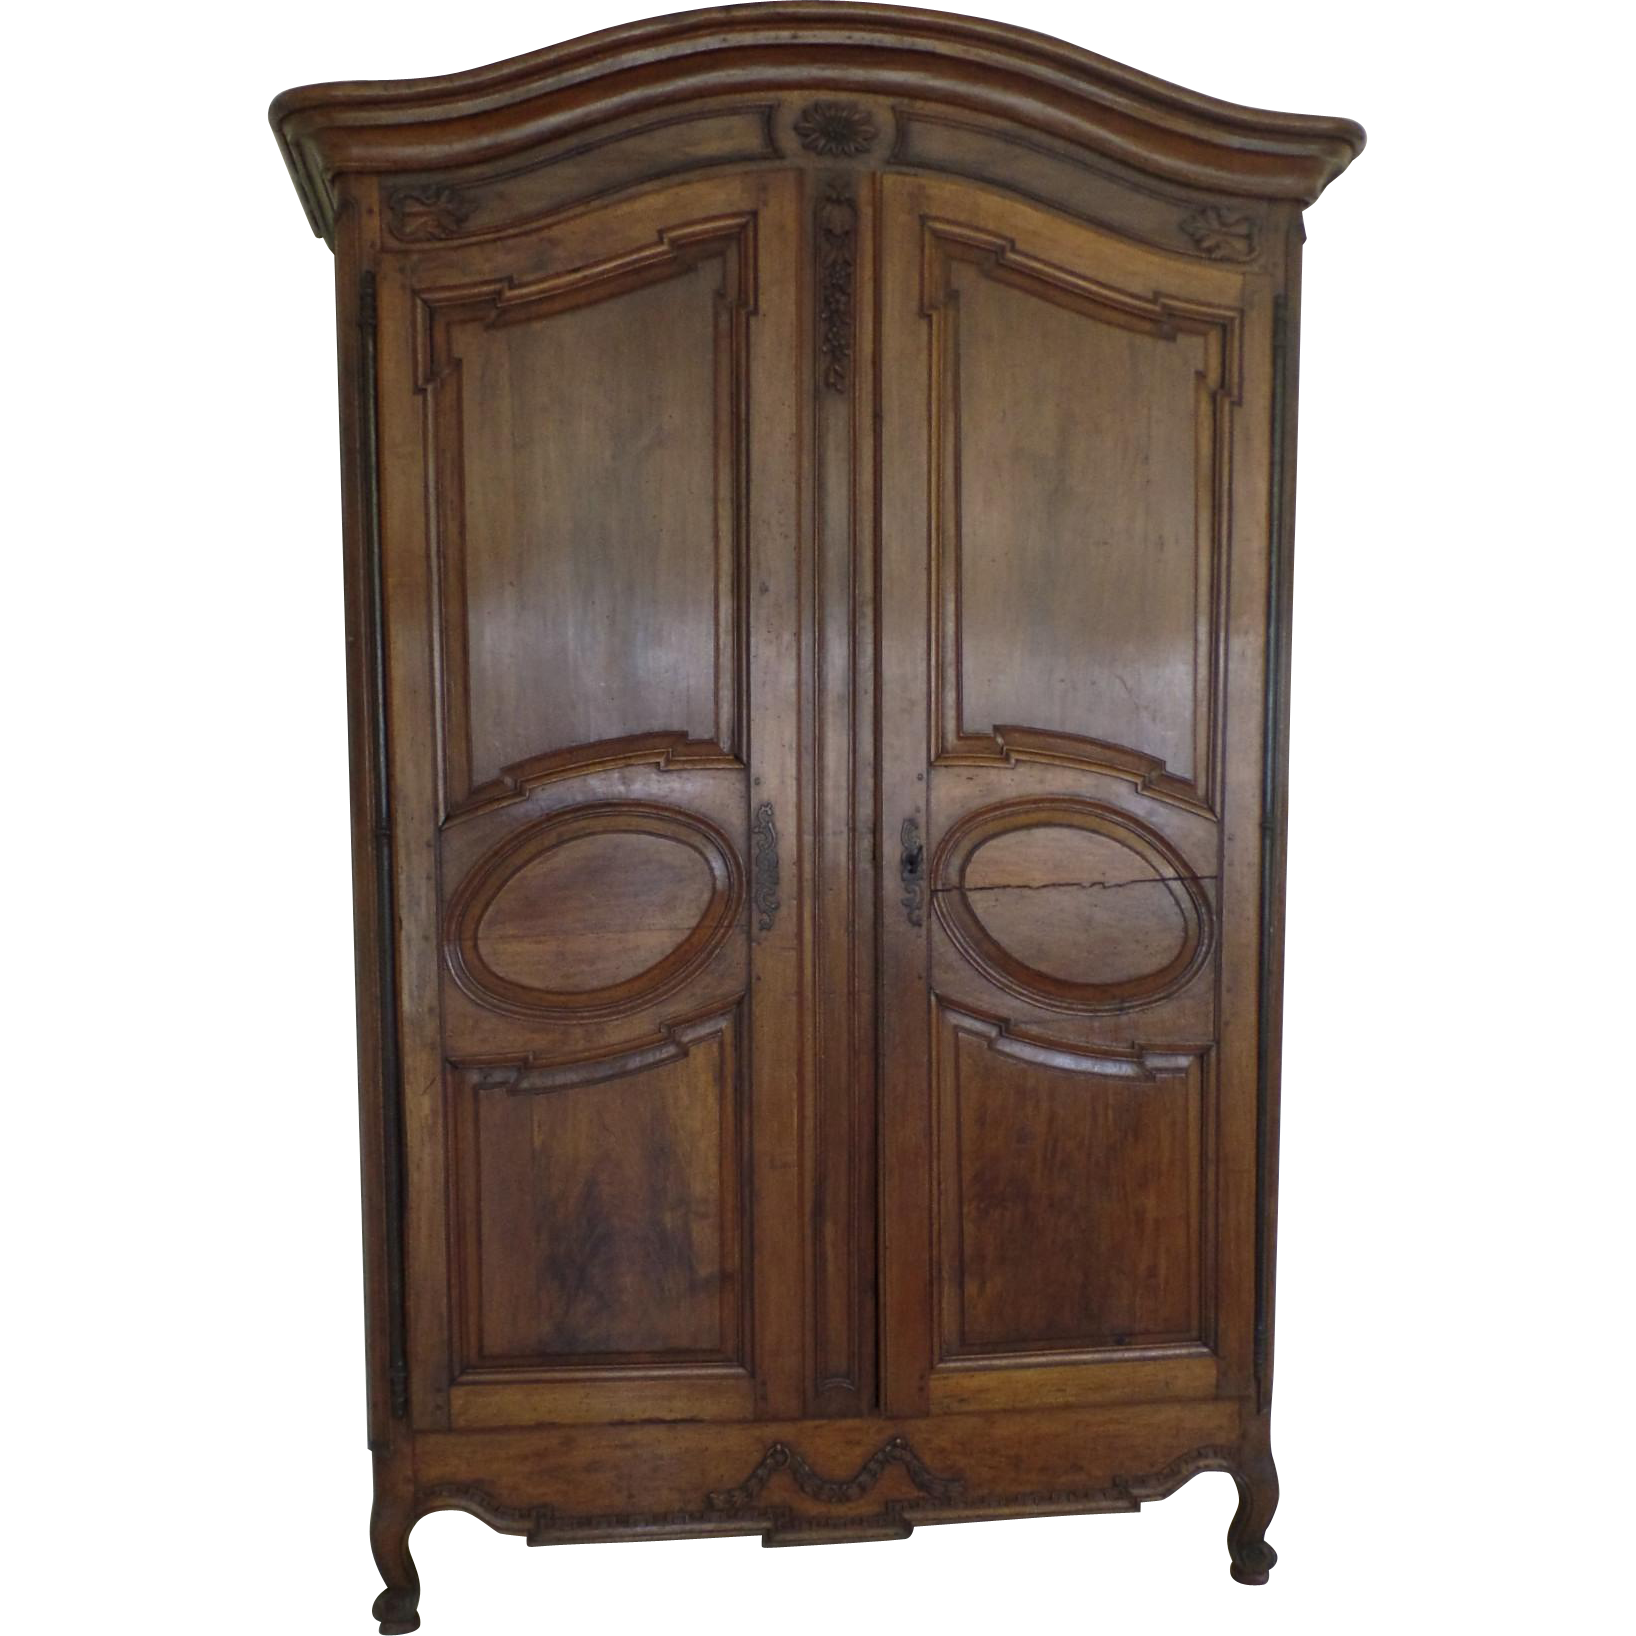 louis xv grand walnut armoire provence 18th century from. Black Bedroom Furniture Sets. Home Design Ideas